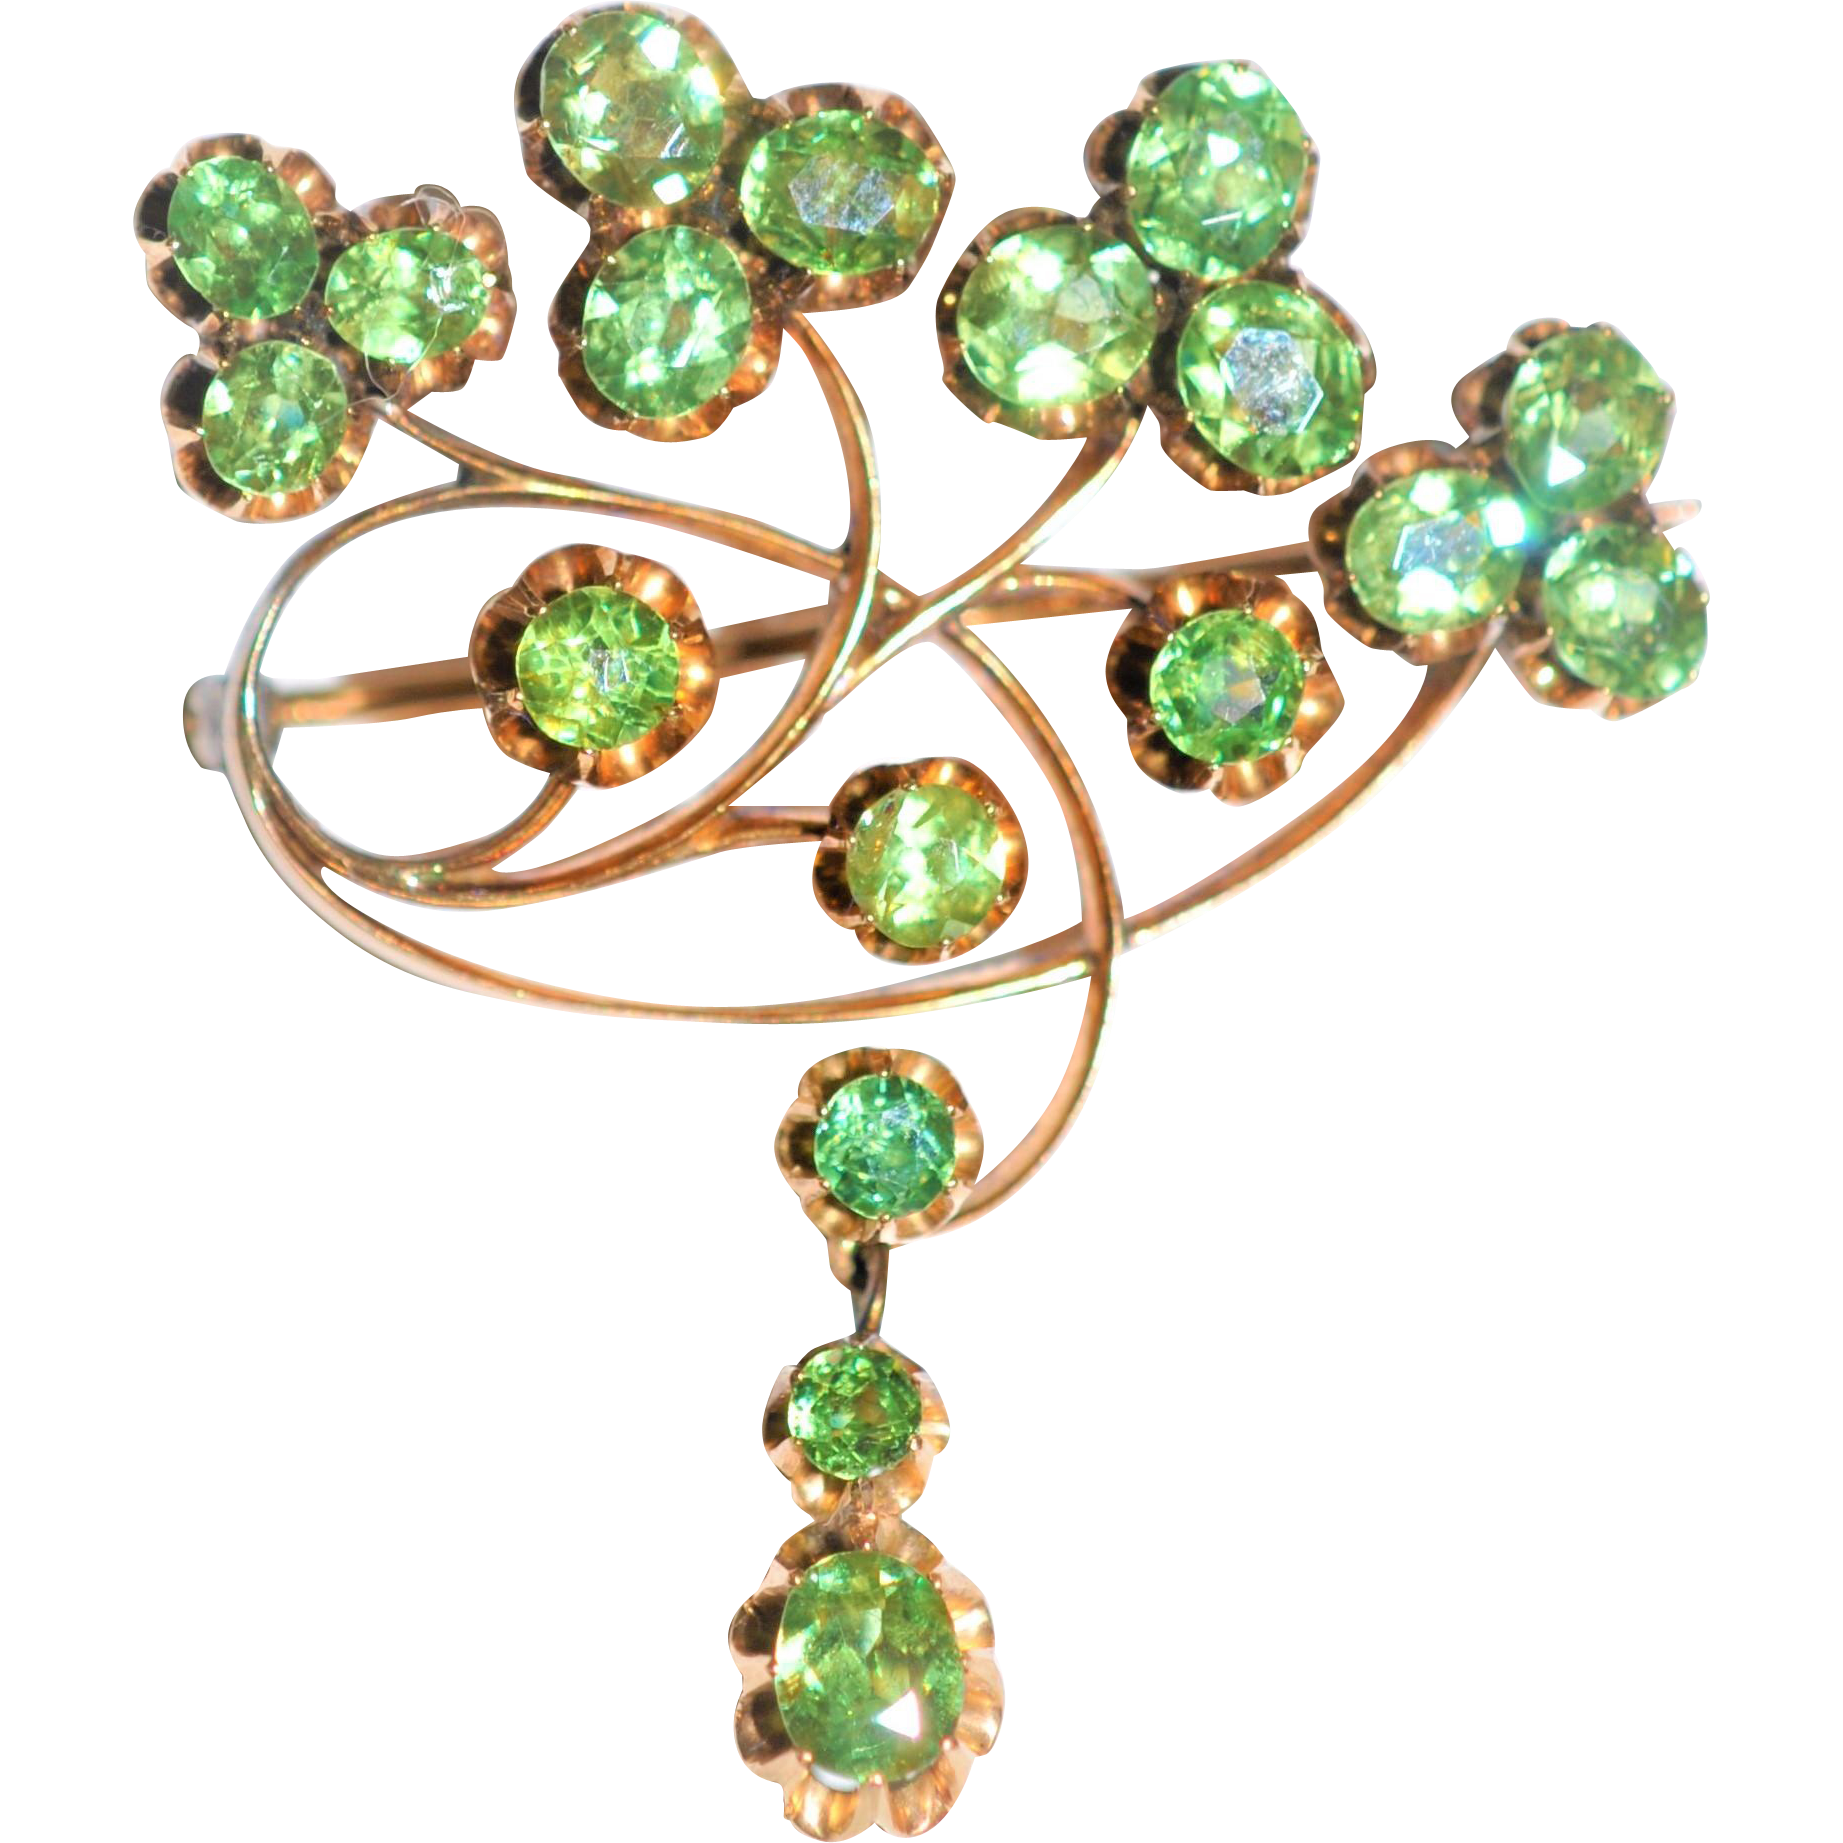 c73cc1b79b2af Russian Art Nouveau Faberge ( Michael Evlampievich Perchin) signed  Demantoid Garnet Brooch 14 kt Rose Gold - found at www.rubylane.com  @rubylanecom # ...